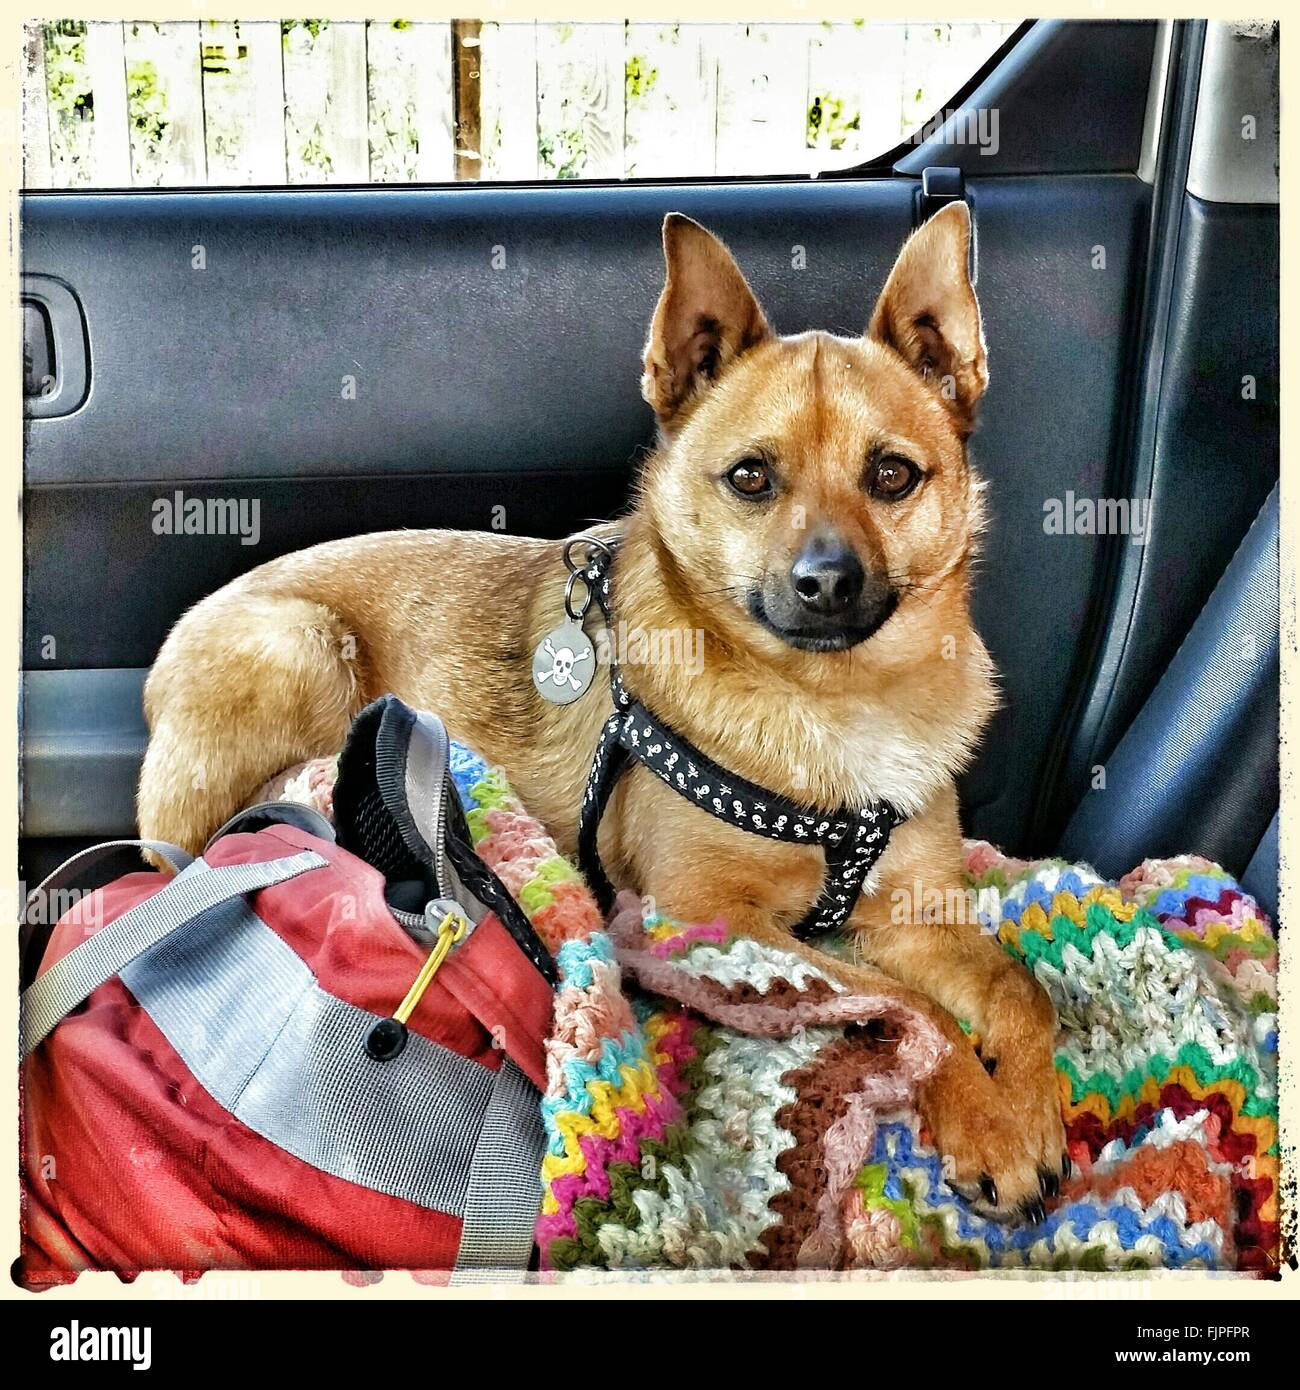 Close-Up Of Dog Sitting In Car - Stock Image